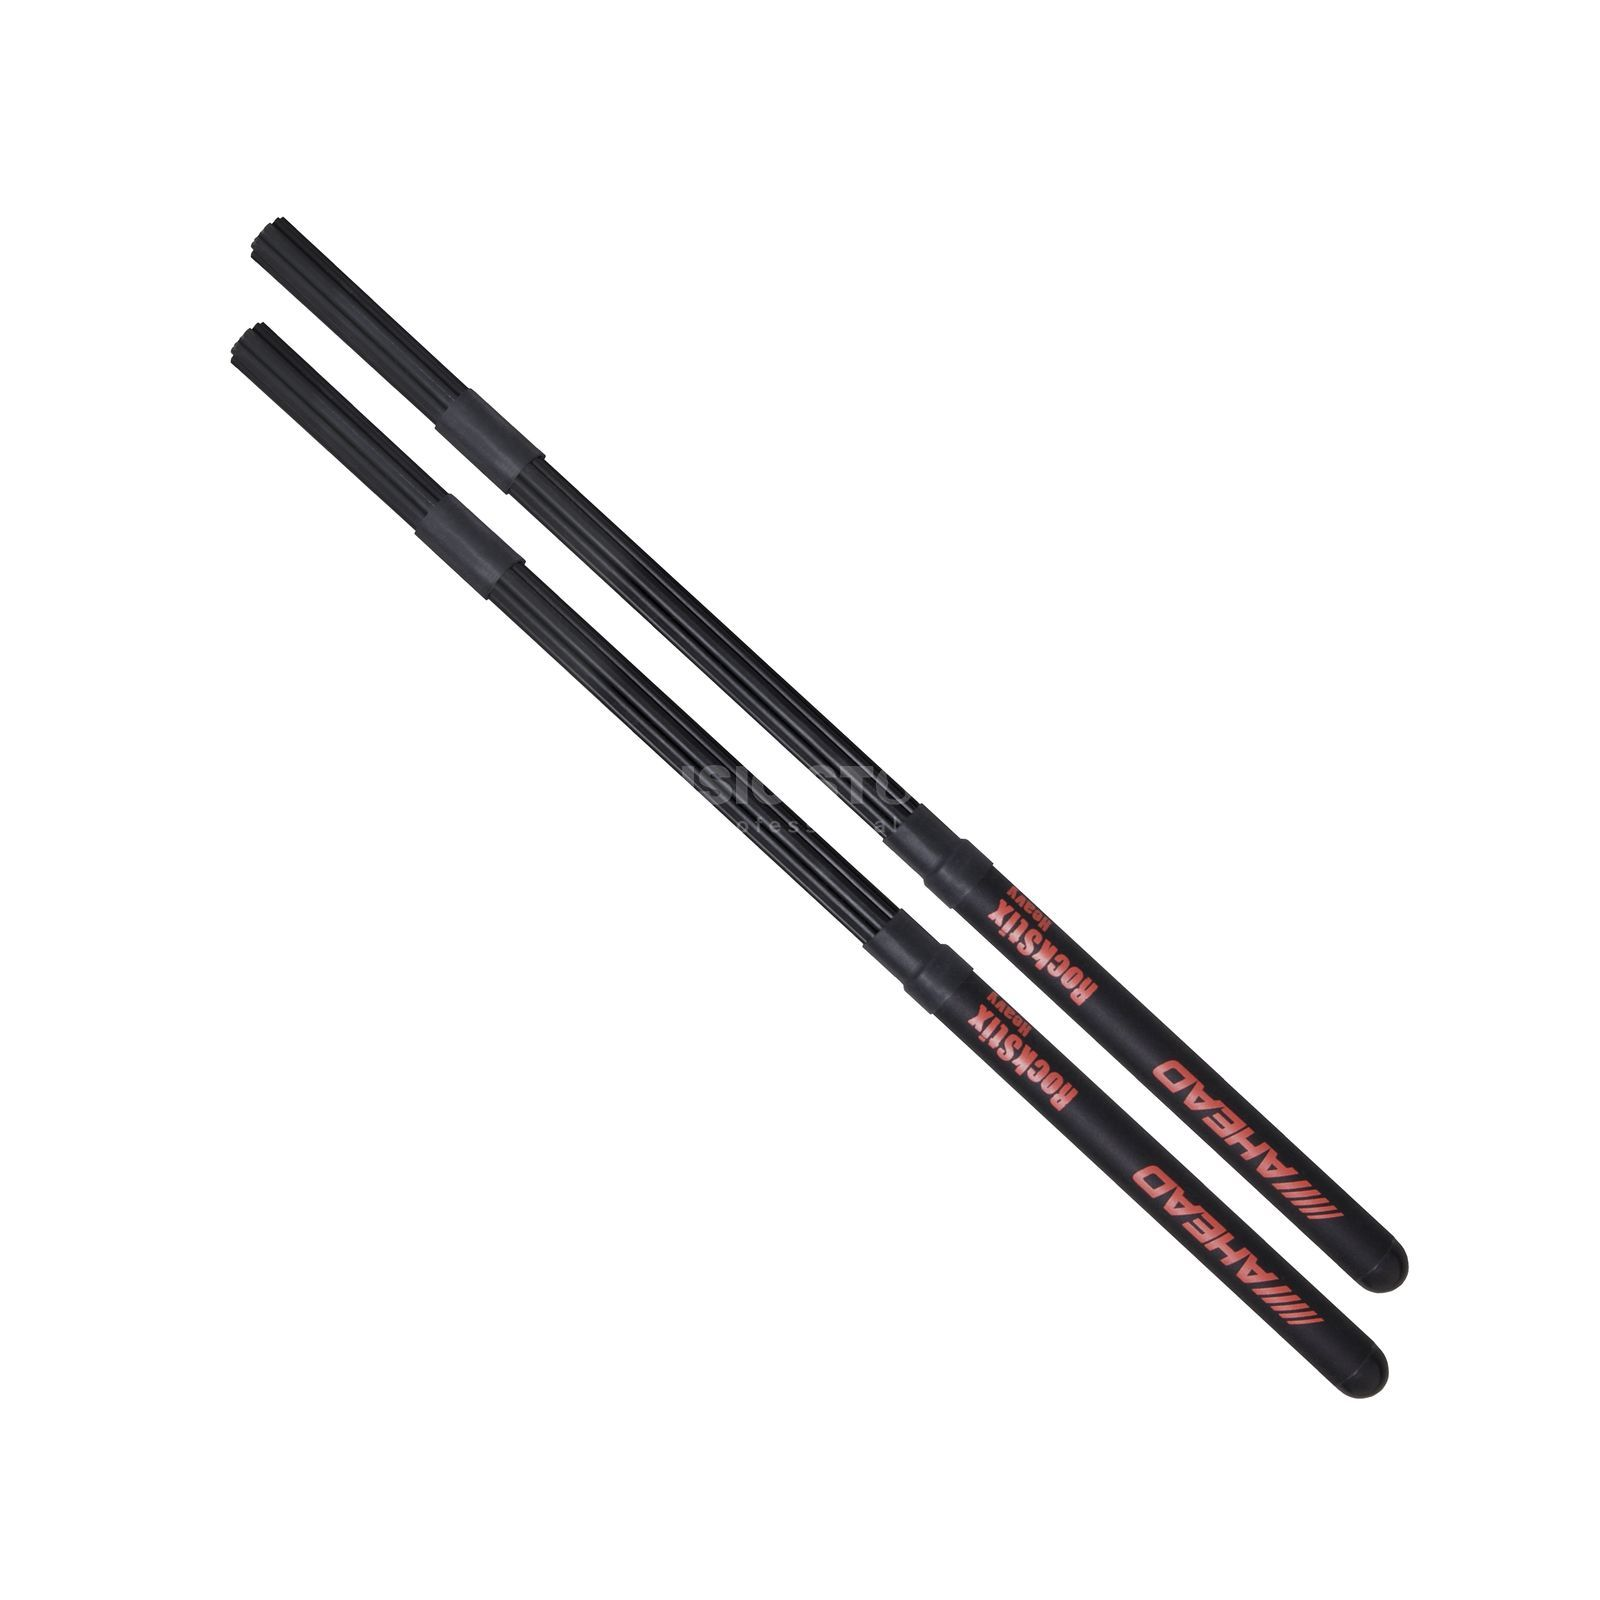 Ahead Sticks RockStix Heavy 11 Rod Bristle RSH Broom Produktbild